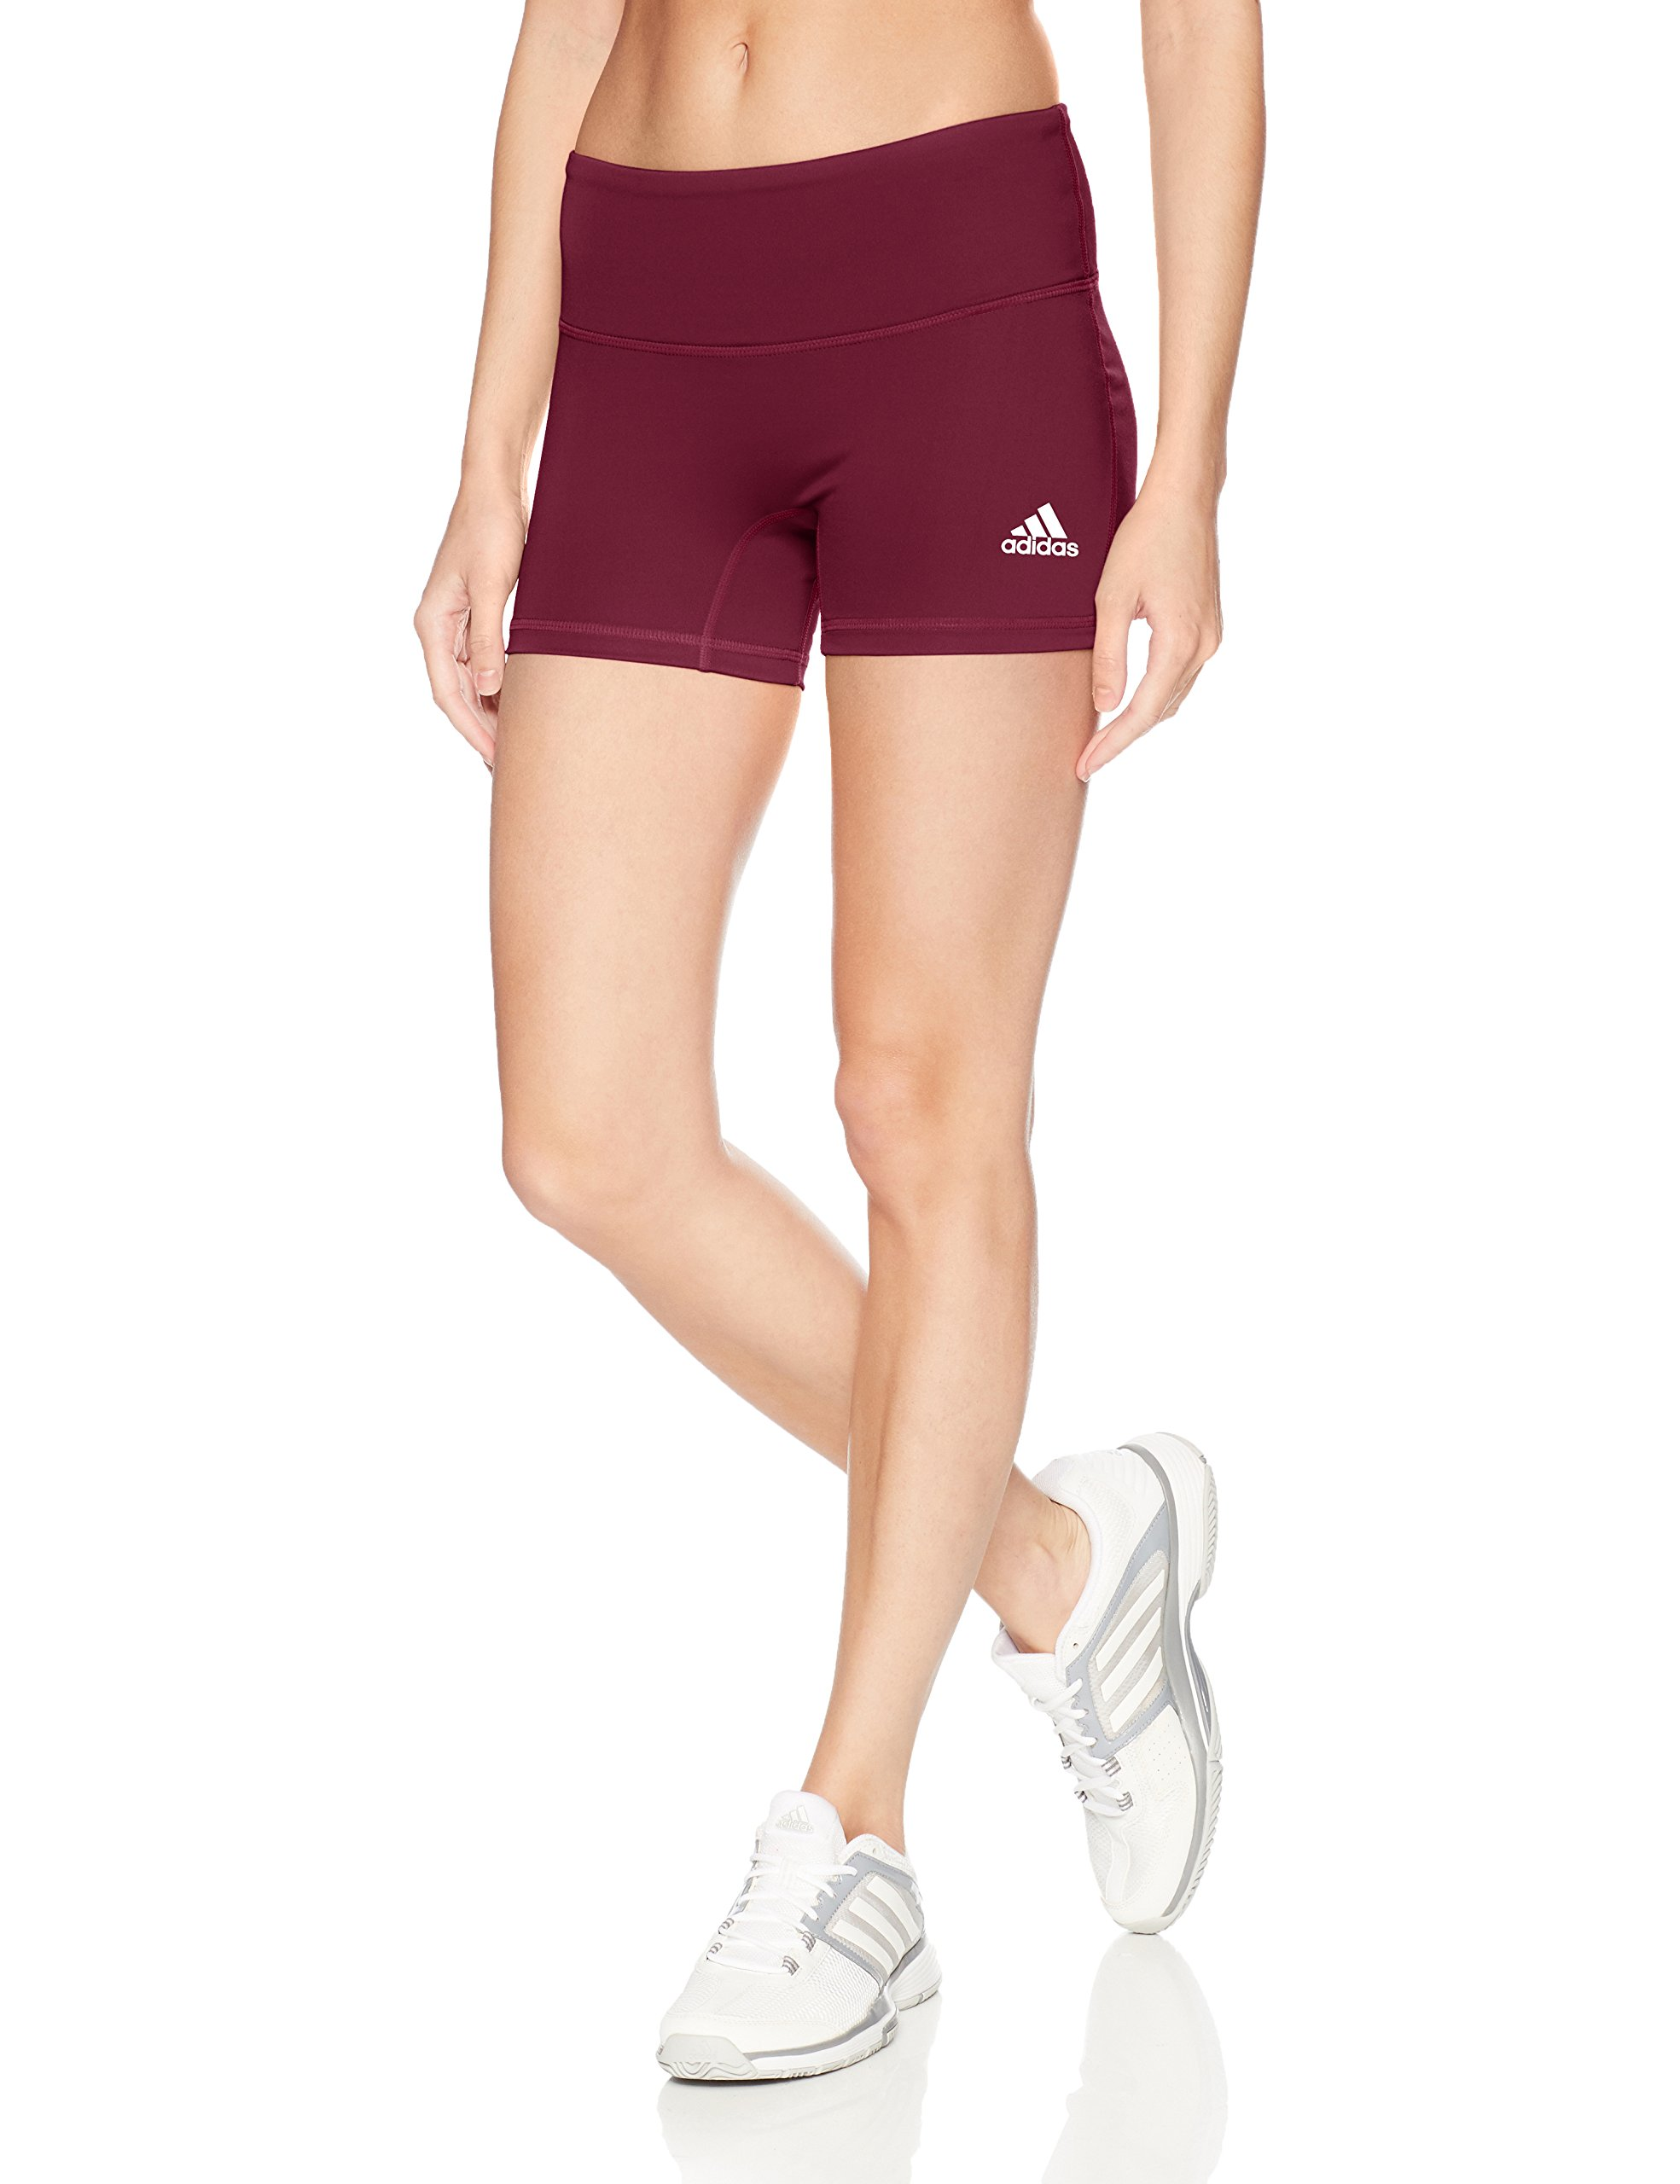 adidas Women's 4 Inch Short Tight, Maroon, Large by adidas